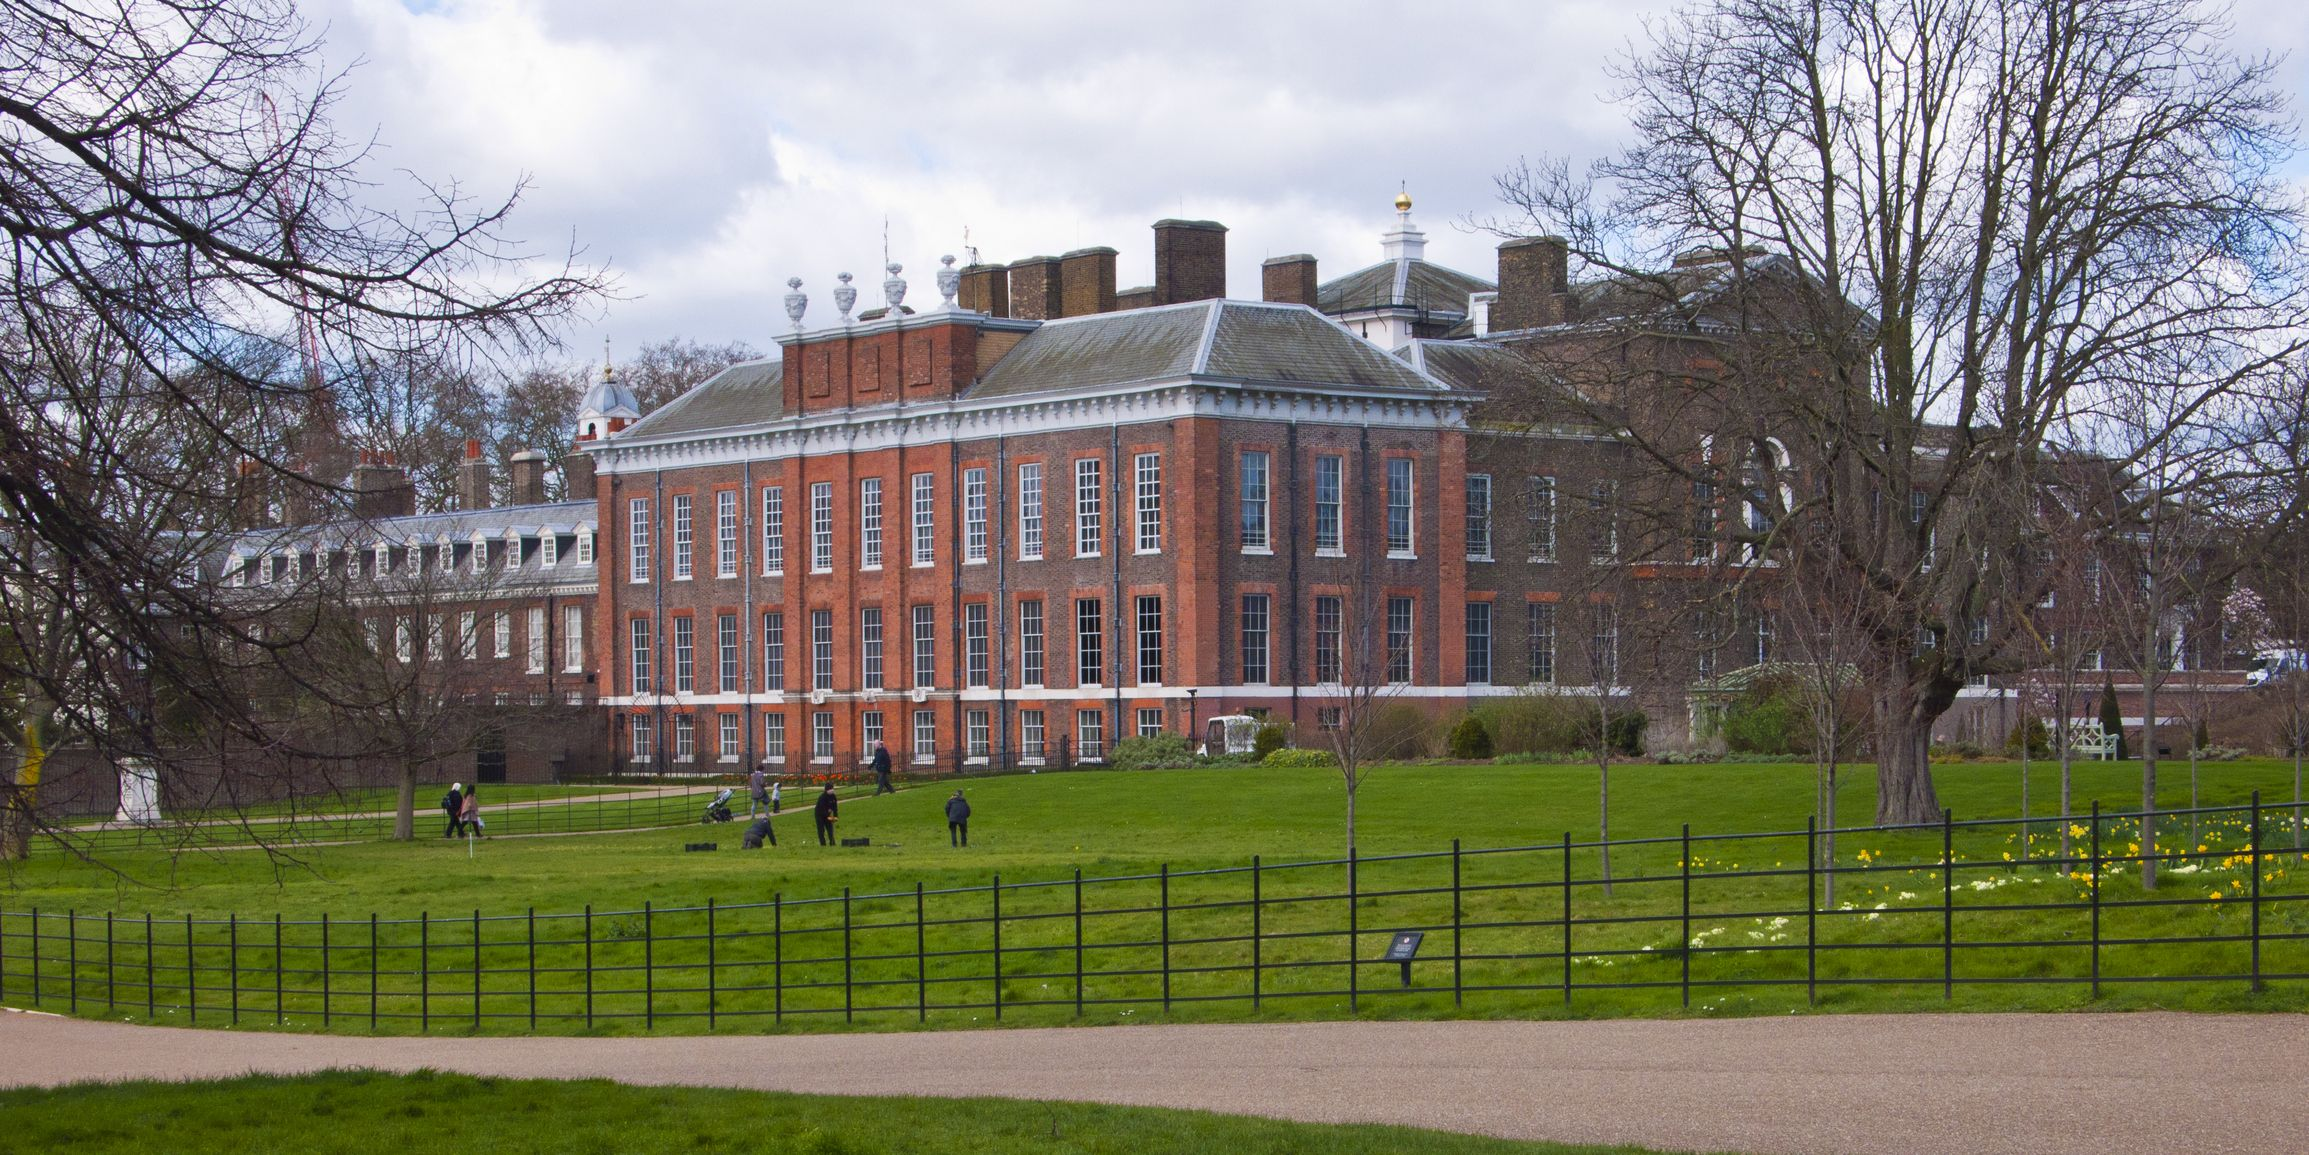 Kensington Palace and Gardens, Manchester England, United Kingdom.